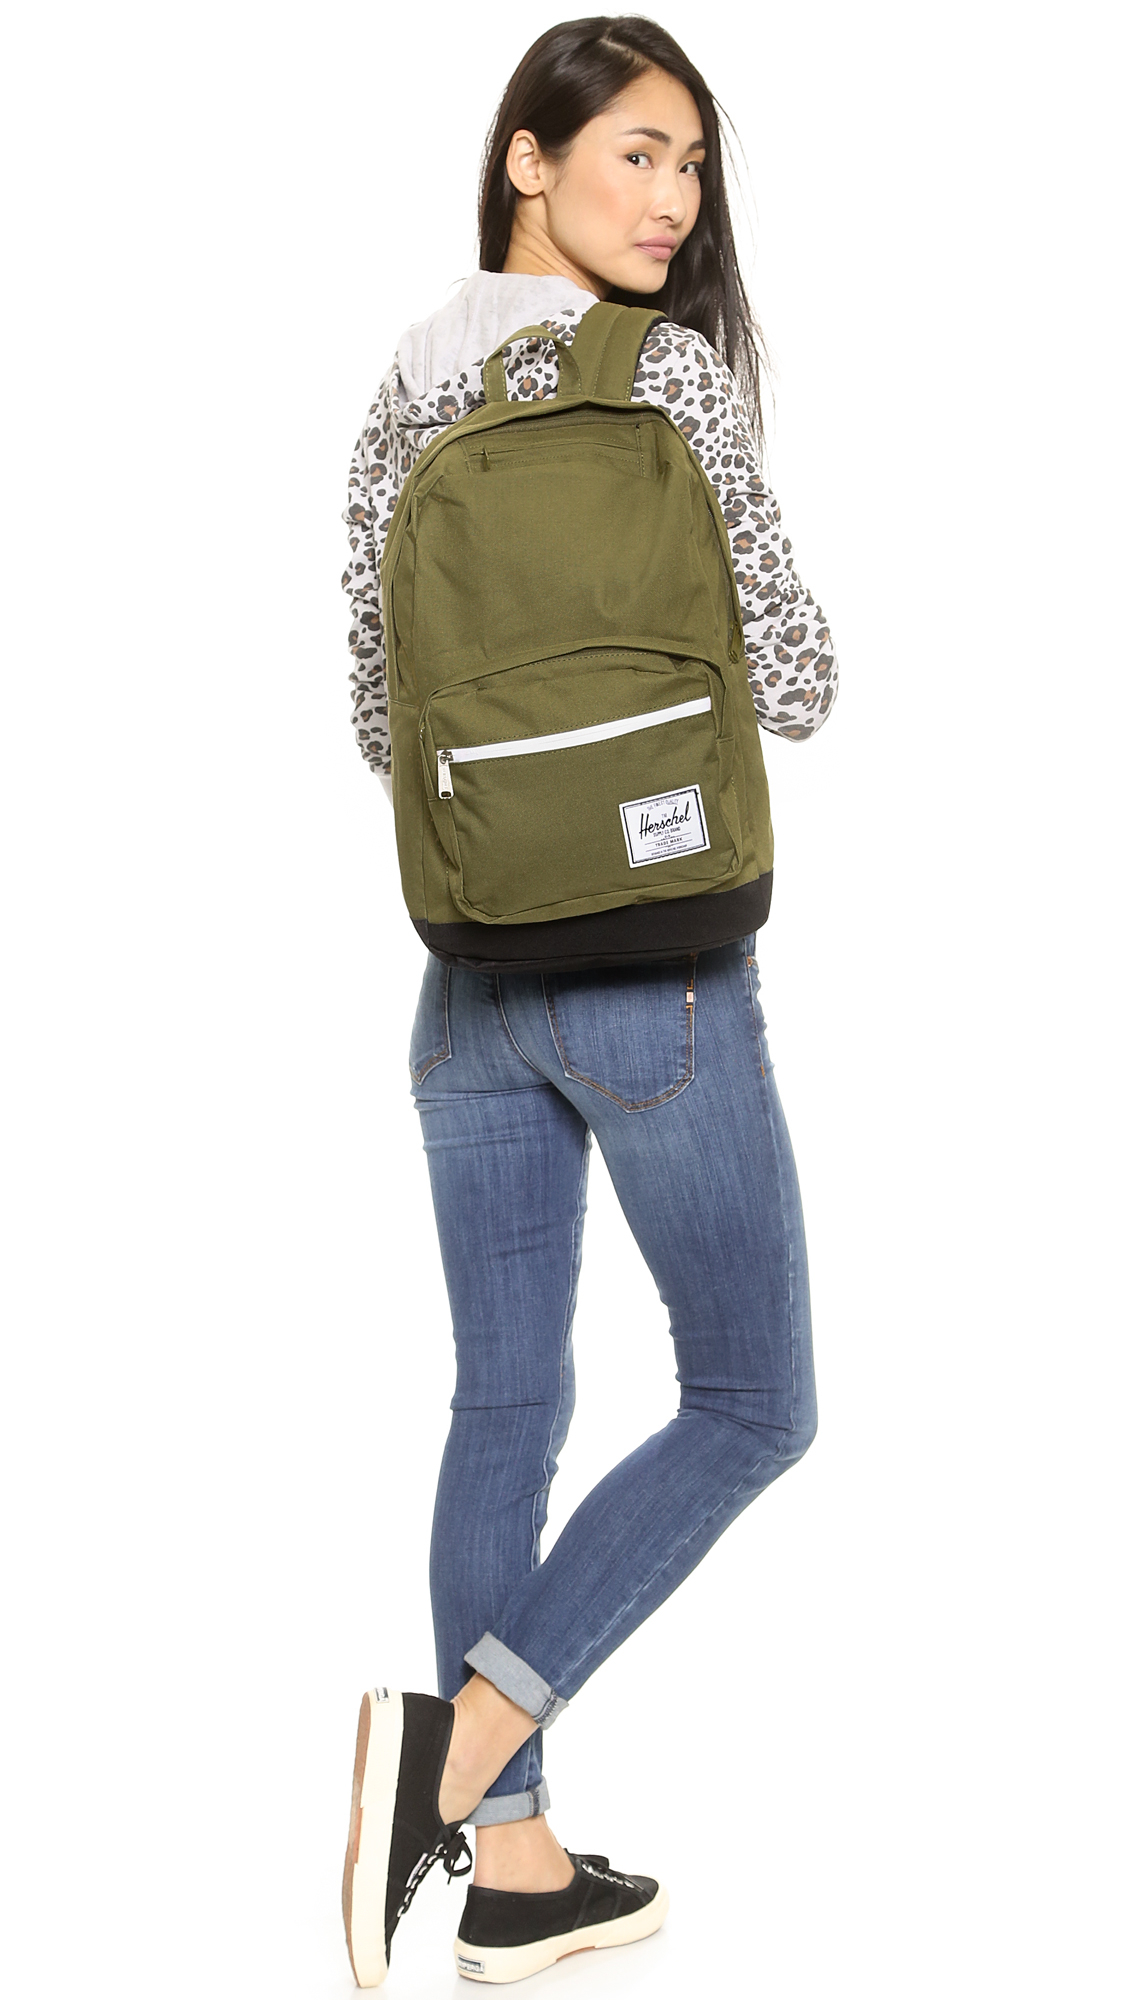 ddb98625229 Lyst - Herschel Supply Co. Pop Quiz Backpack - Army in Green